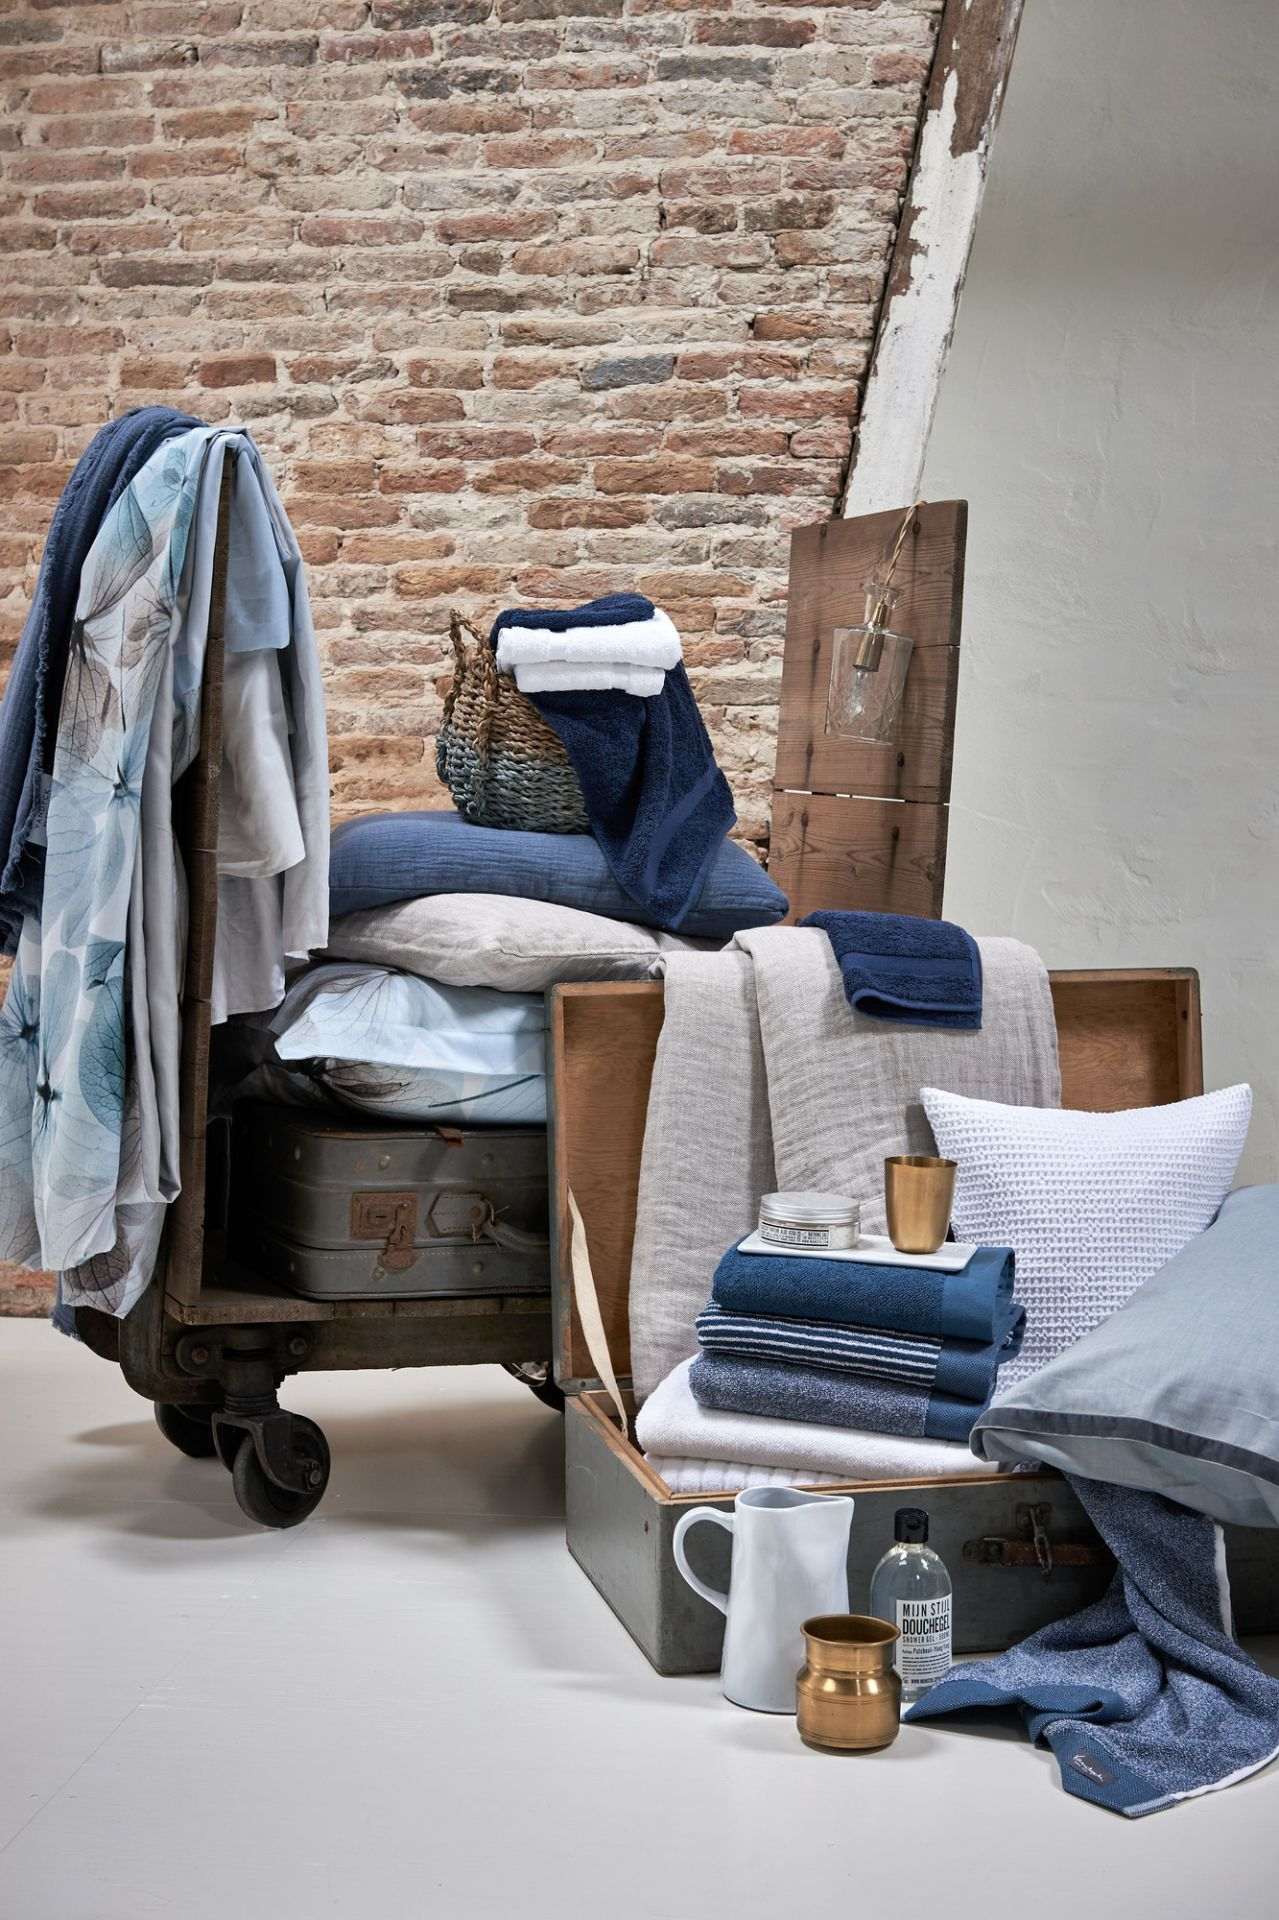 VanDyck bedtextiel Lovestory 403, Pure 8, Pure 16 184 faded denim, Pure 22 011 grey, Home 71 090 white, Home uni, Petite Ligne, Home Mouline 403 Vintage blue bij Slaapkenner Lute in Limmen